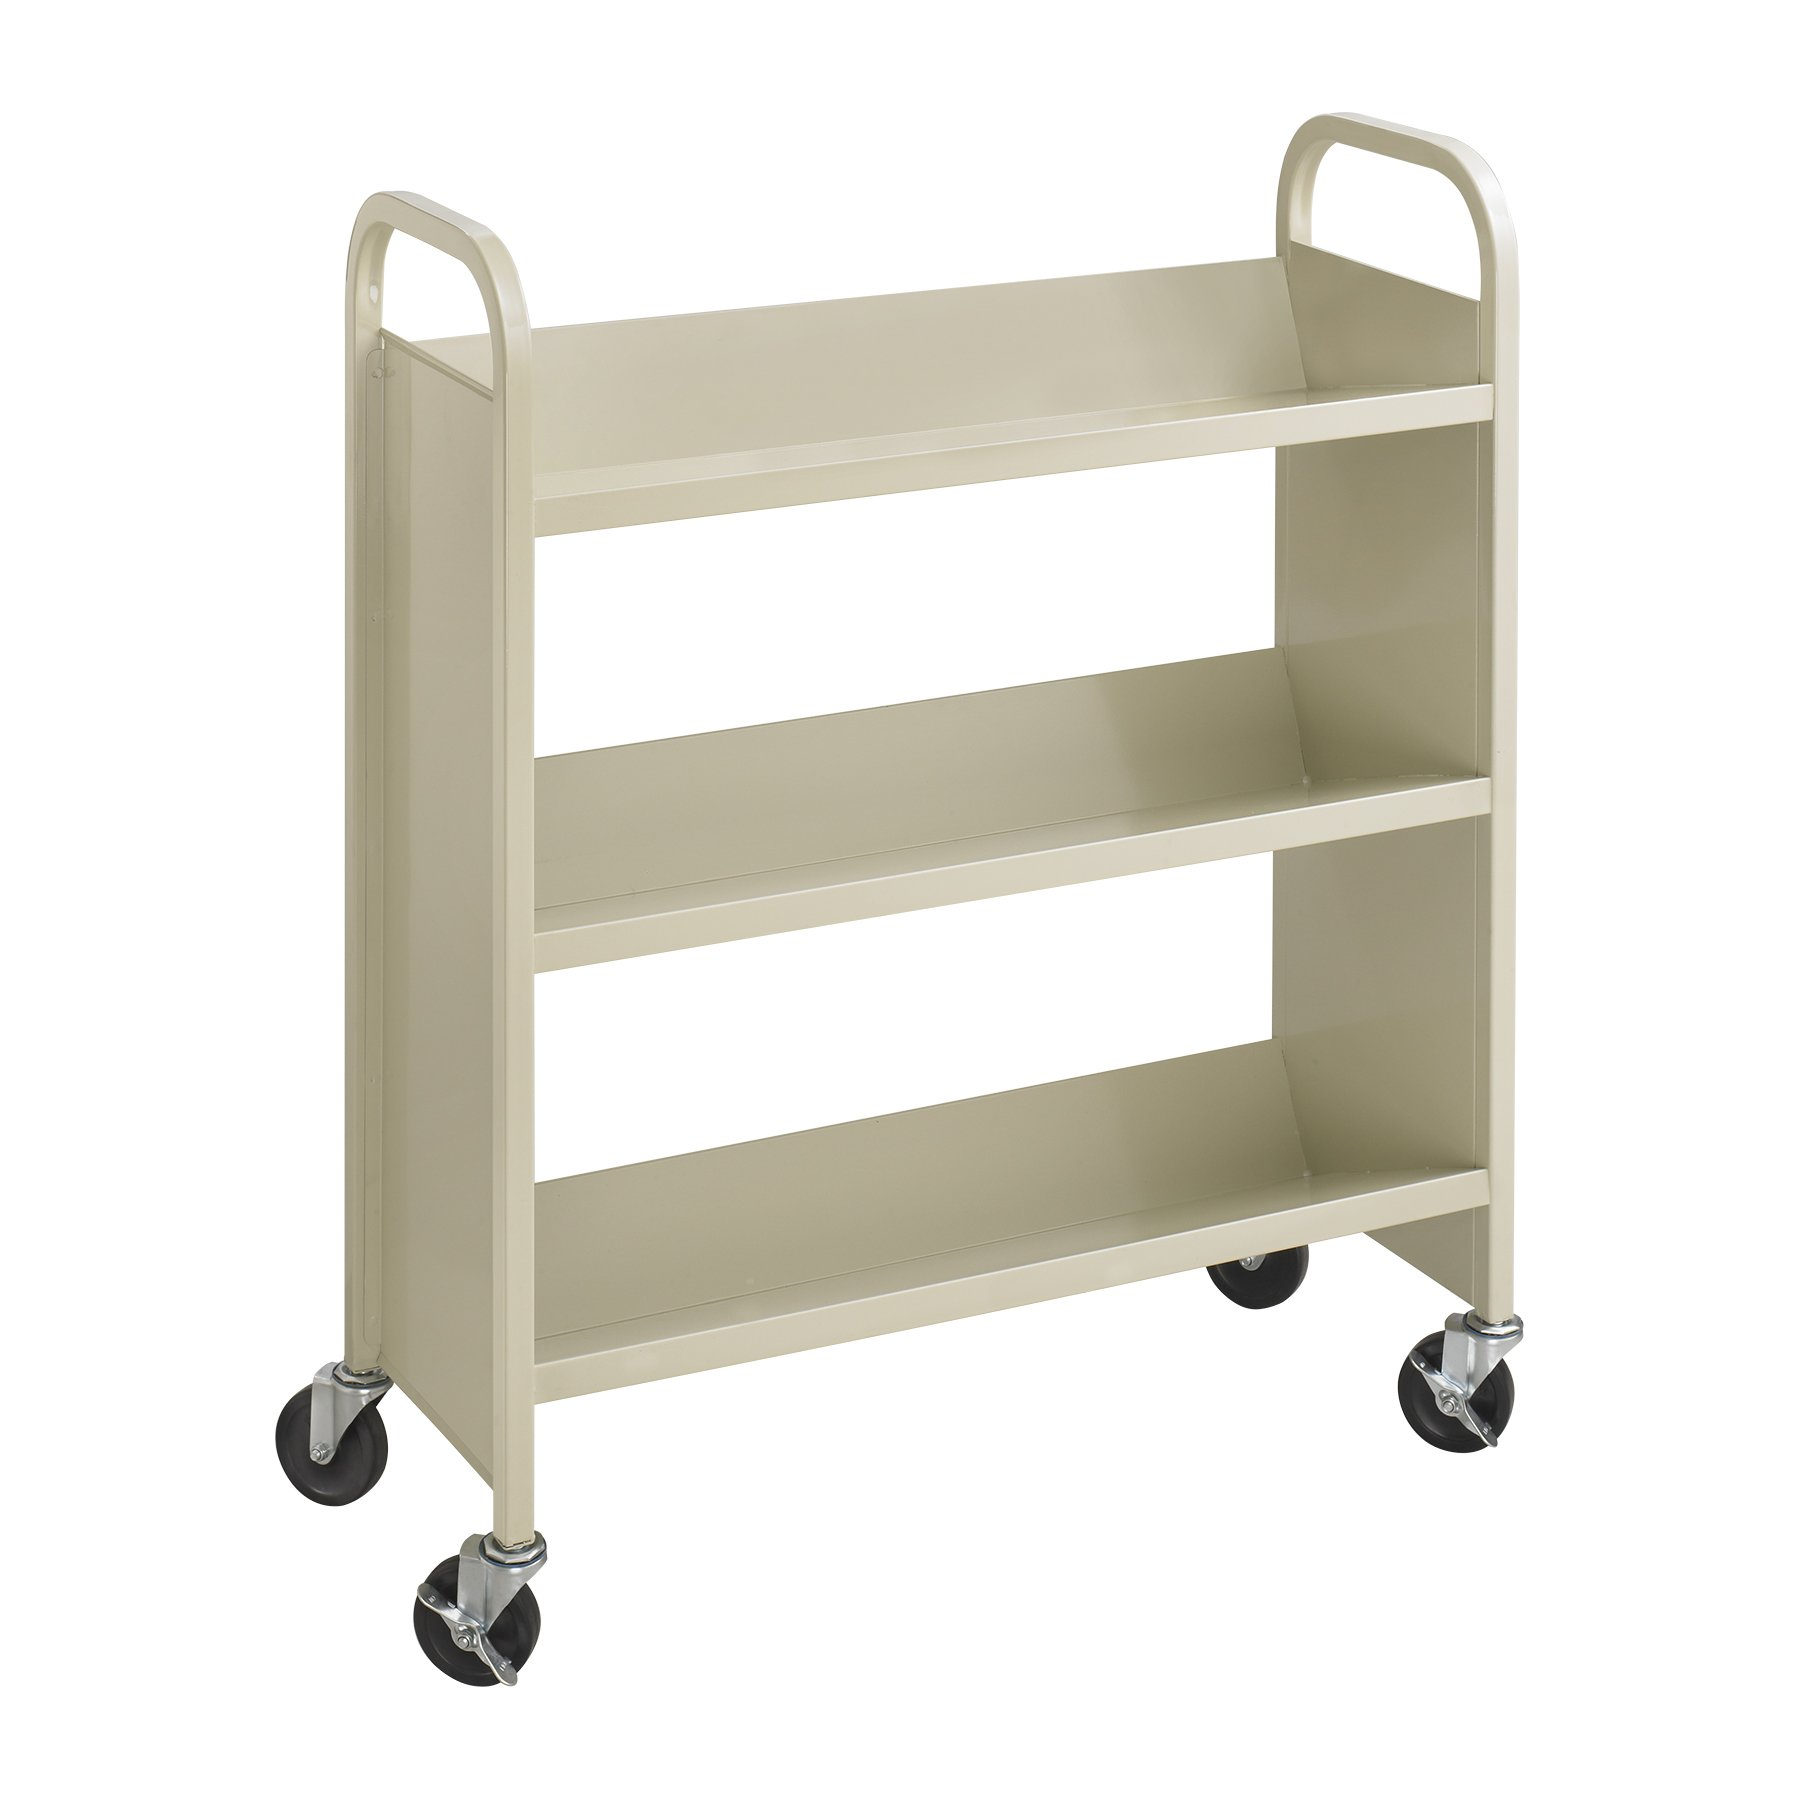 Safco Products 5358SA Steel Single-Sided Book Cart, 3 Shelf, Sand